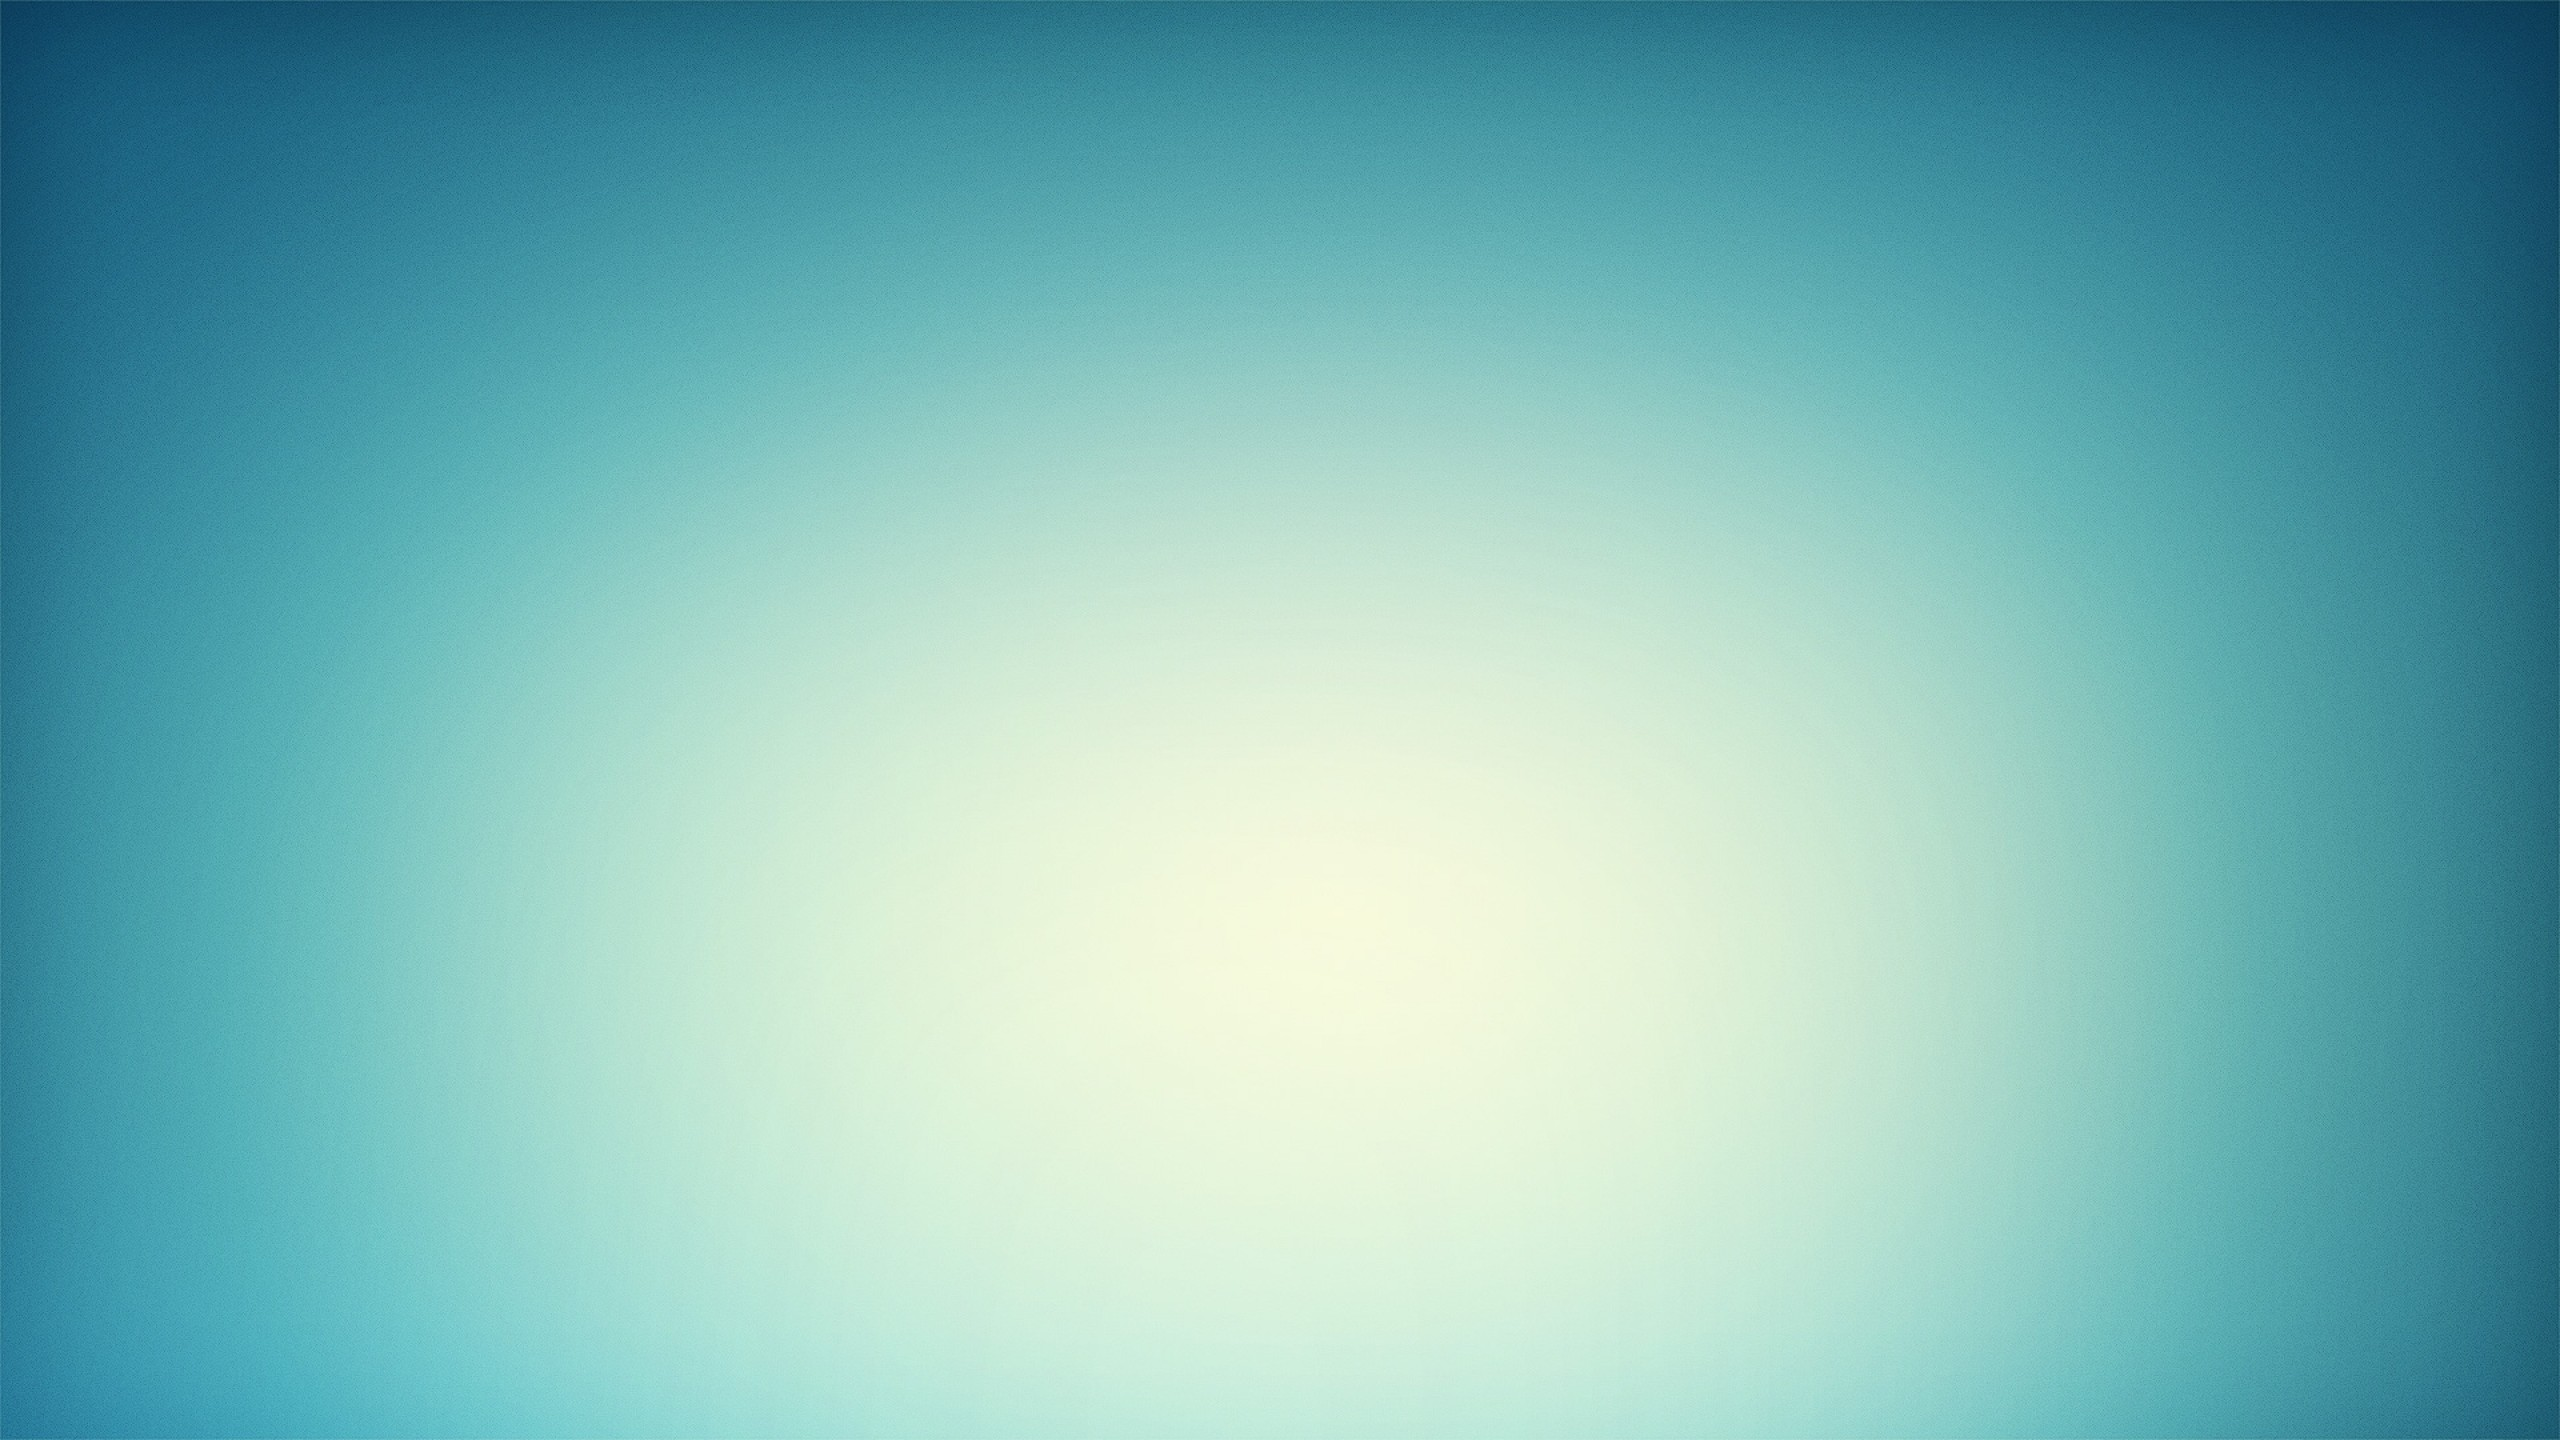 2560x1440 wallpaper for youtube